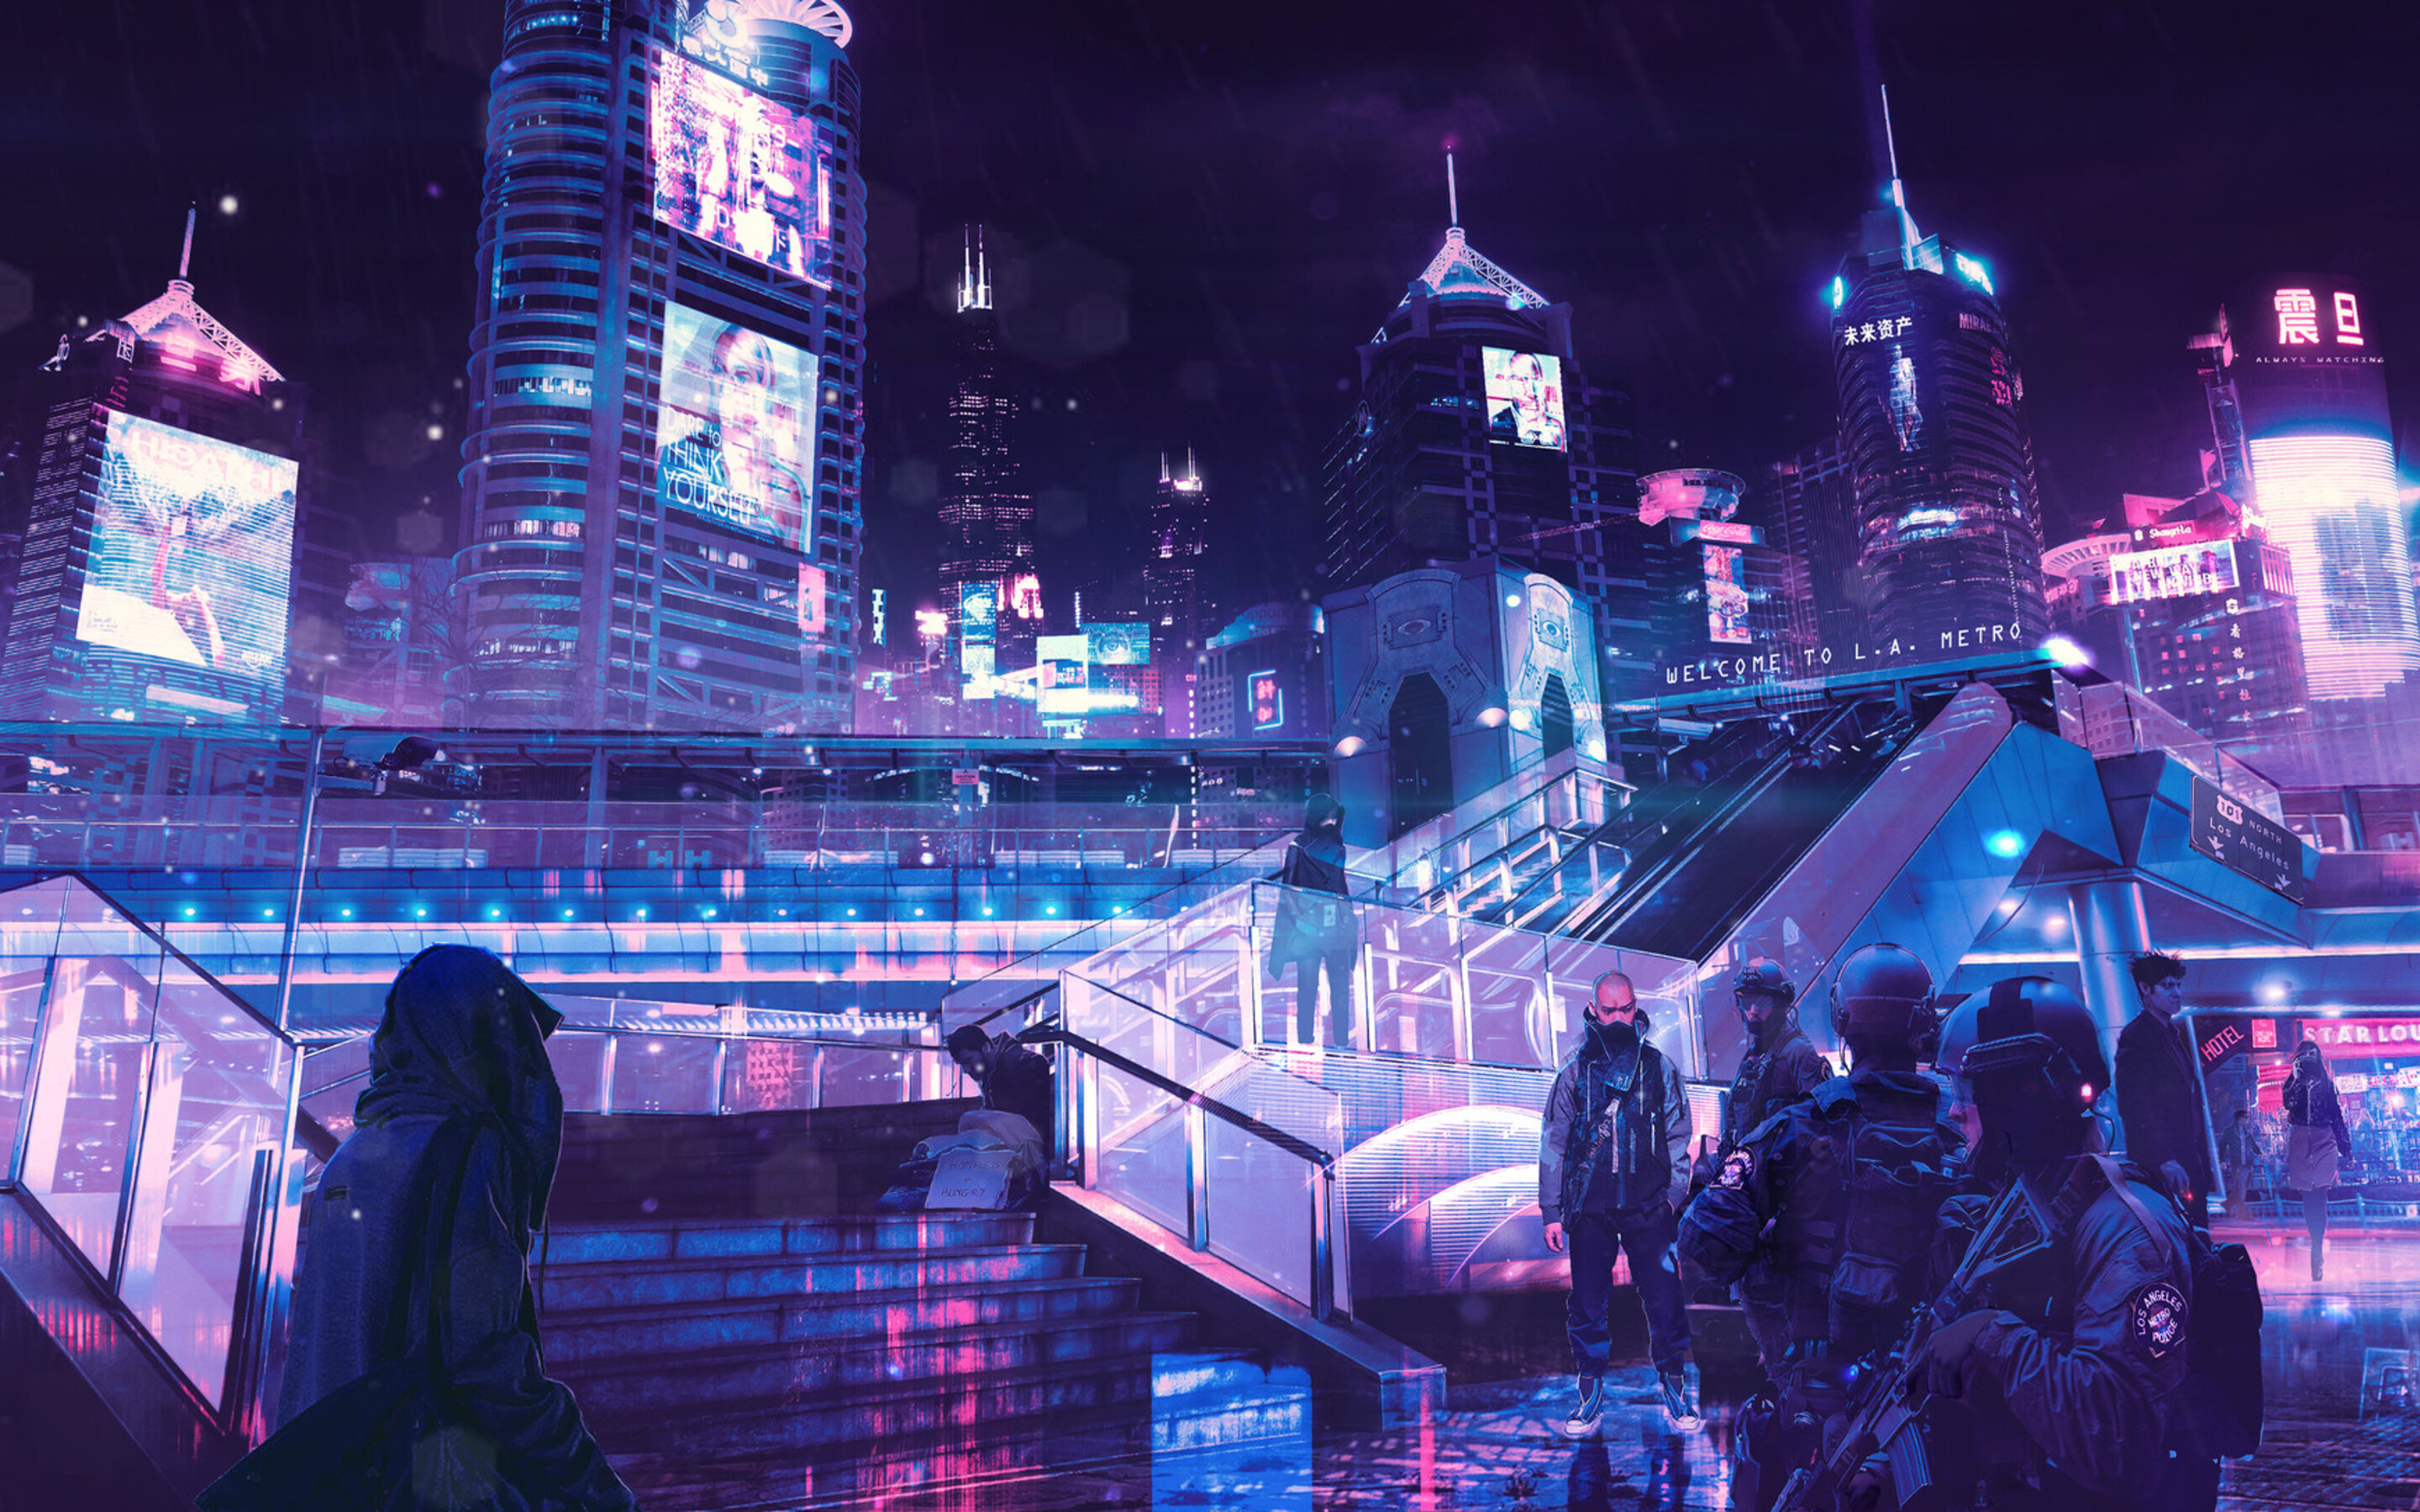 x1800 Cyberpunk Neon City Macbook Pro Retina Hd 4k Wallpapers Images Backgrounds Photos And Pictures